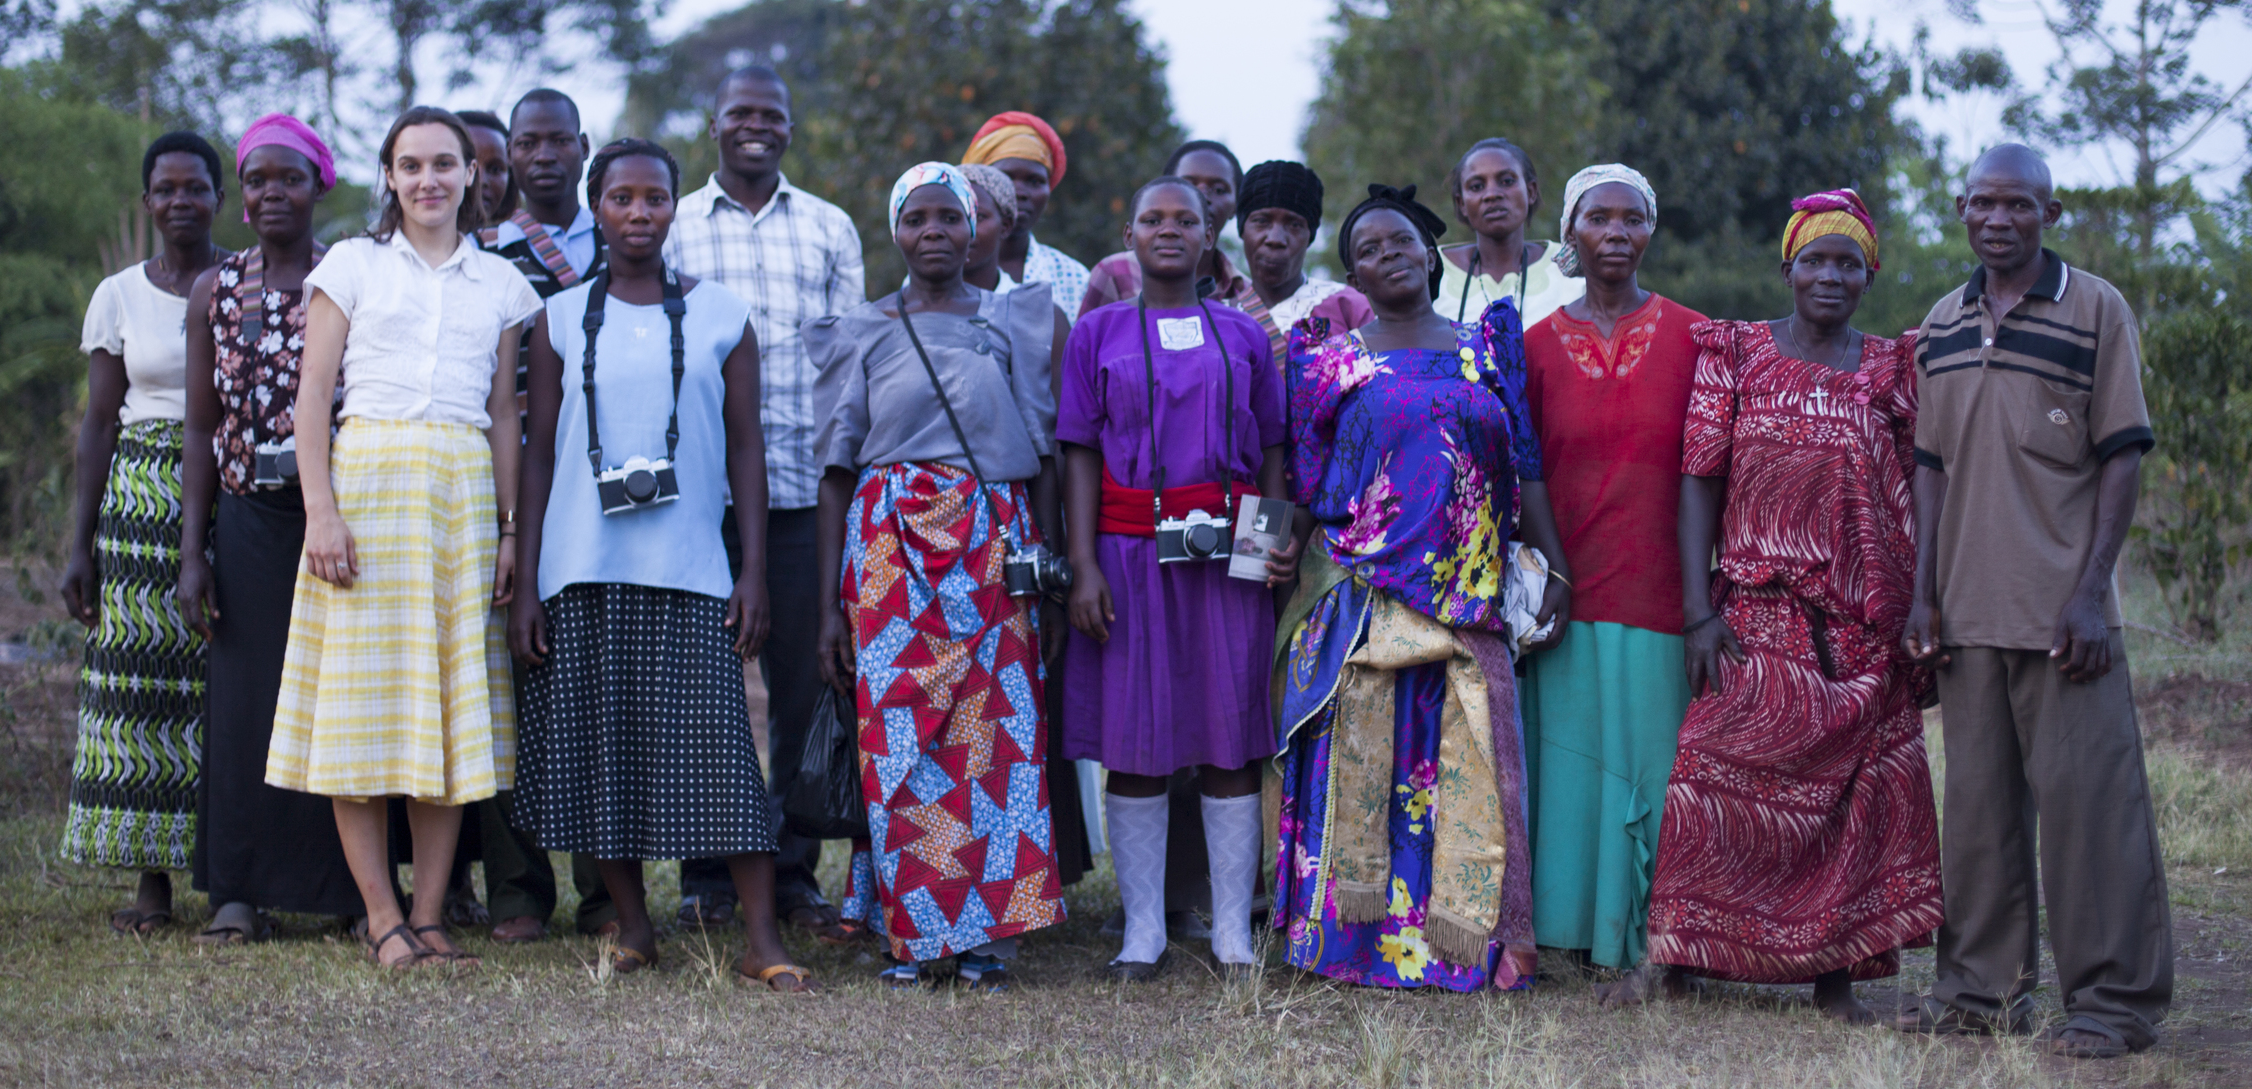 The Wanteete Photo Collective with Project Director Louise Contino and BESO Director Aaron Bukenya.